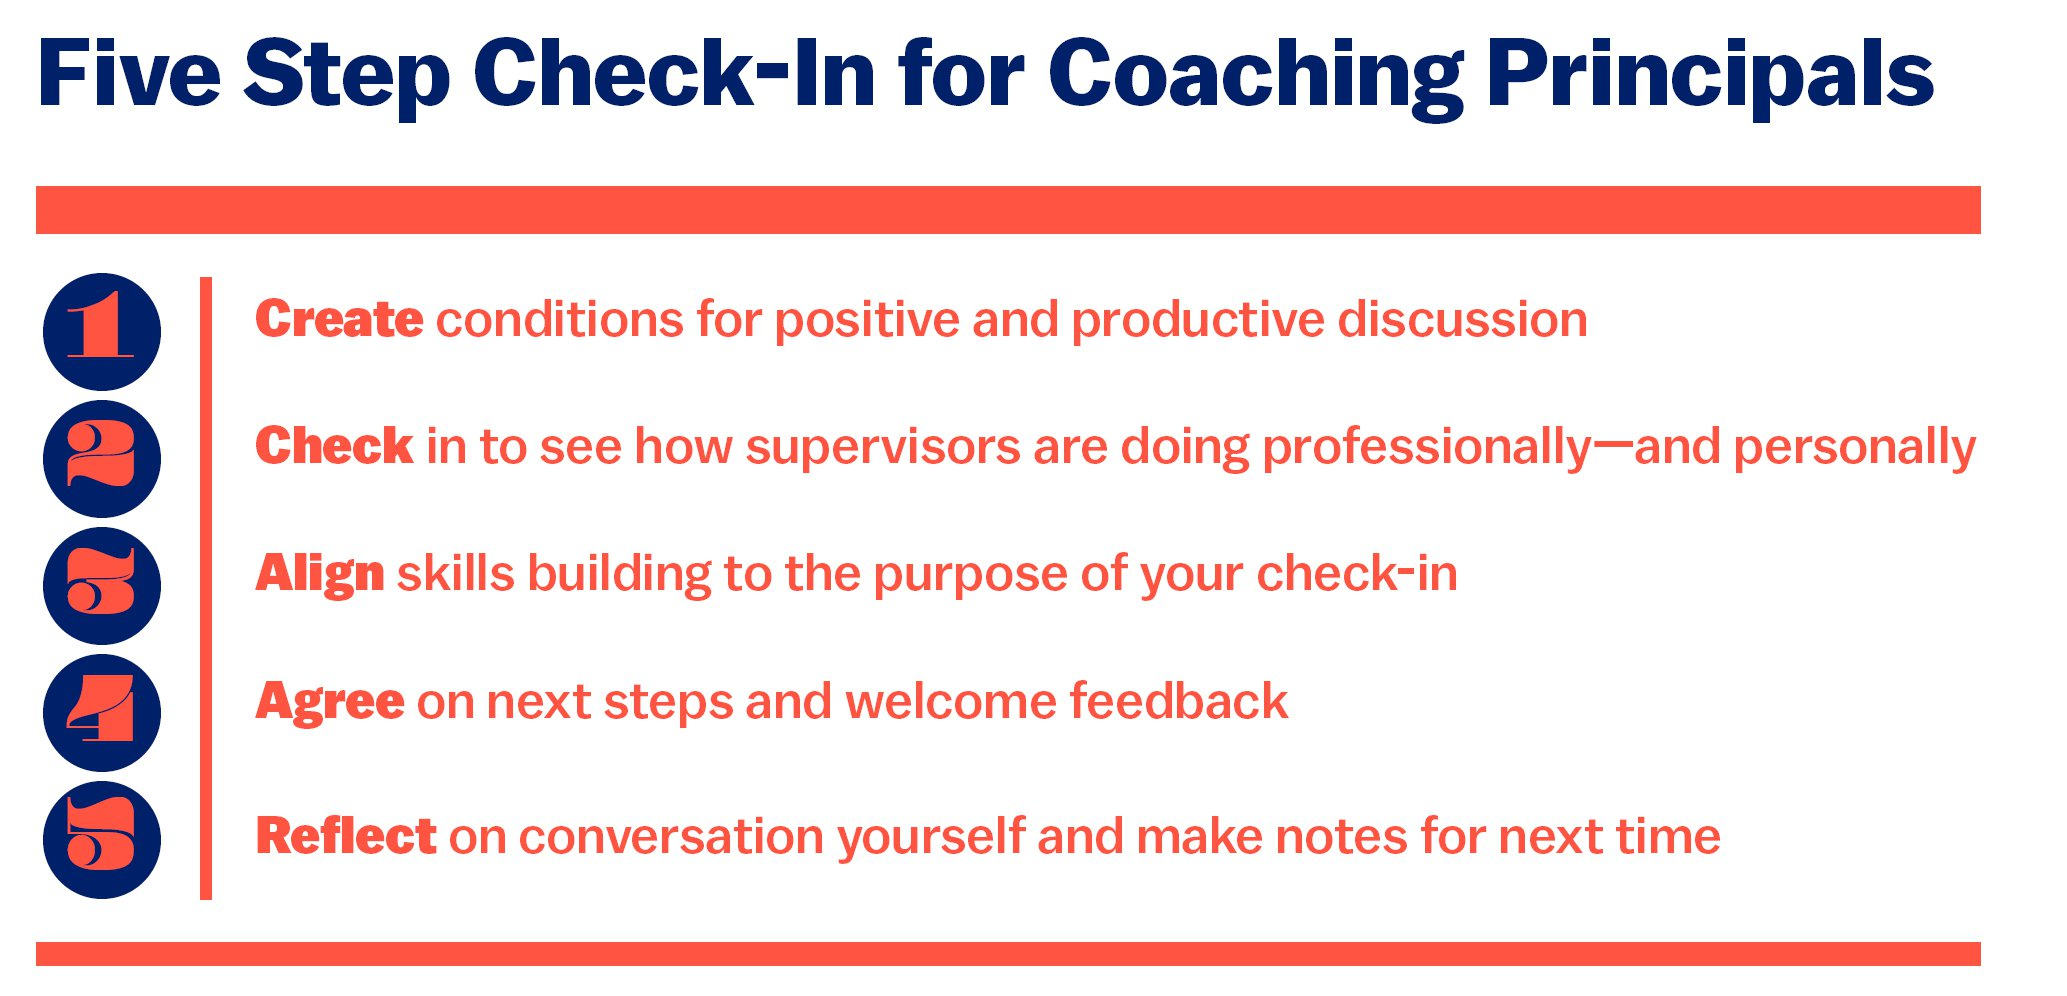 Digital-Promise-1-Five-Steps-Coaching-Principals.jpg